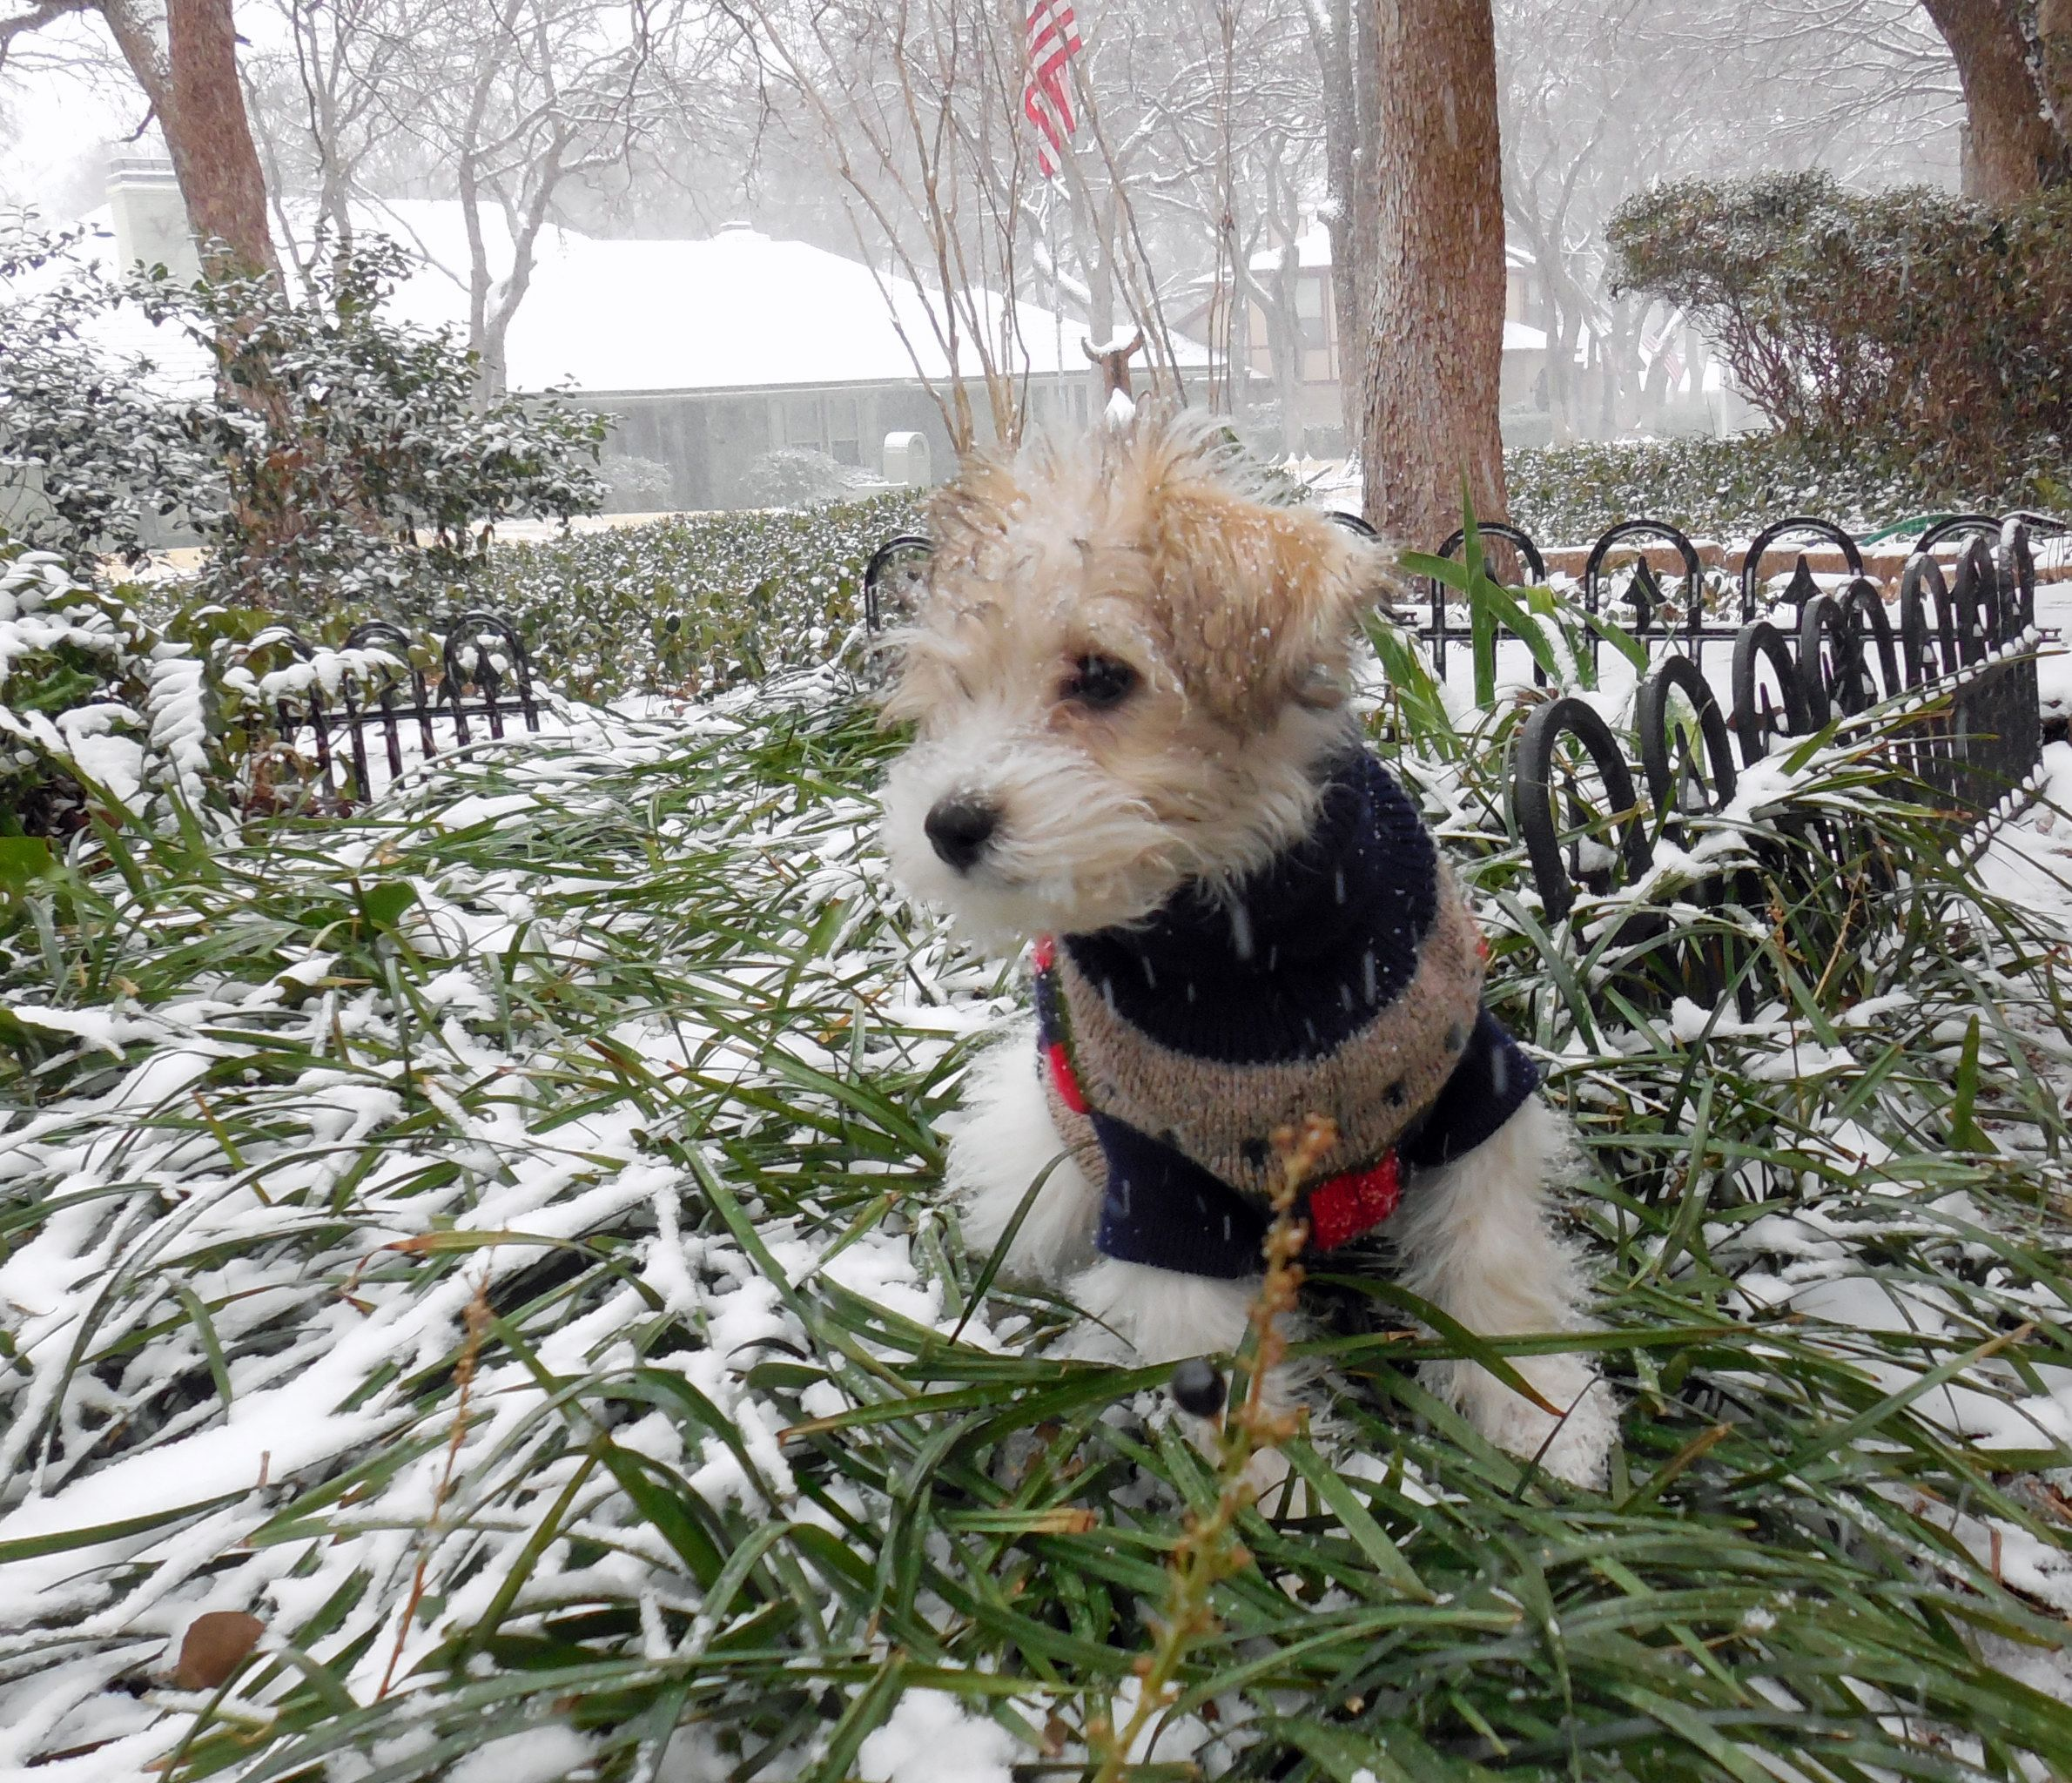 My 3 mo. old Mauzer, Cotton, in her first Texas snow and